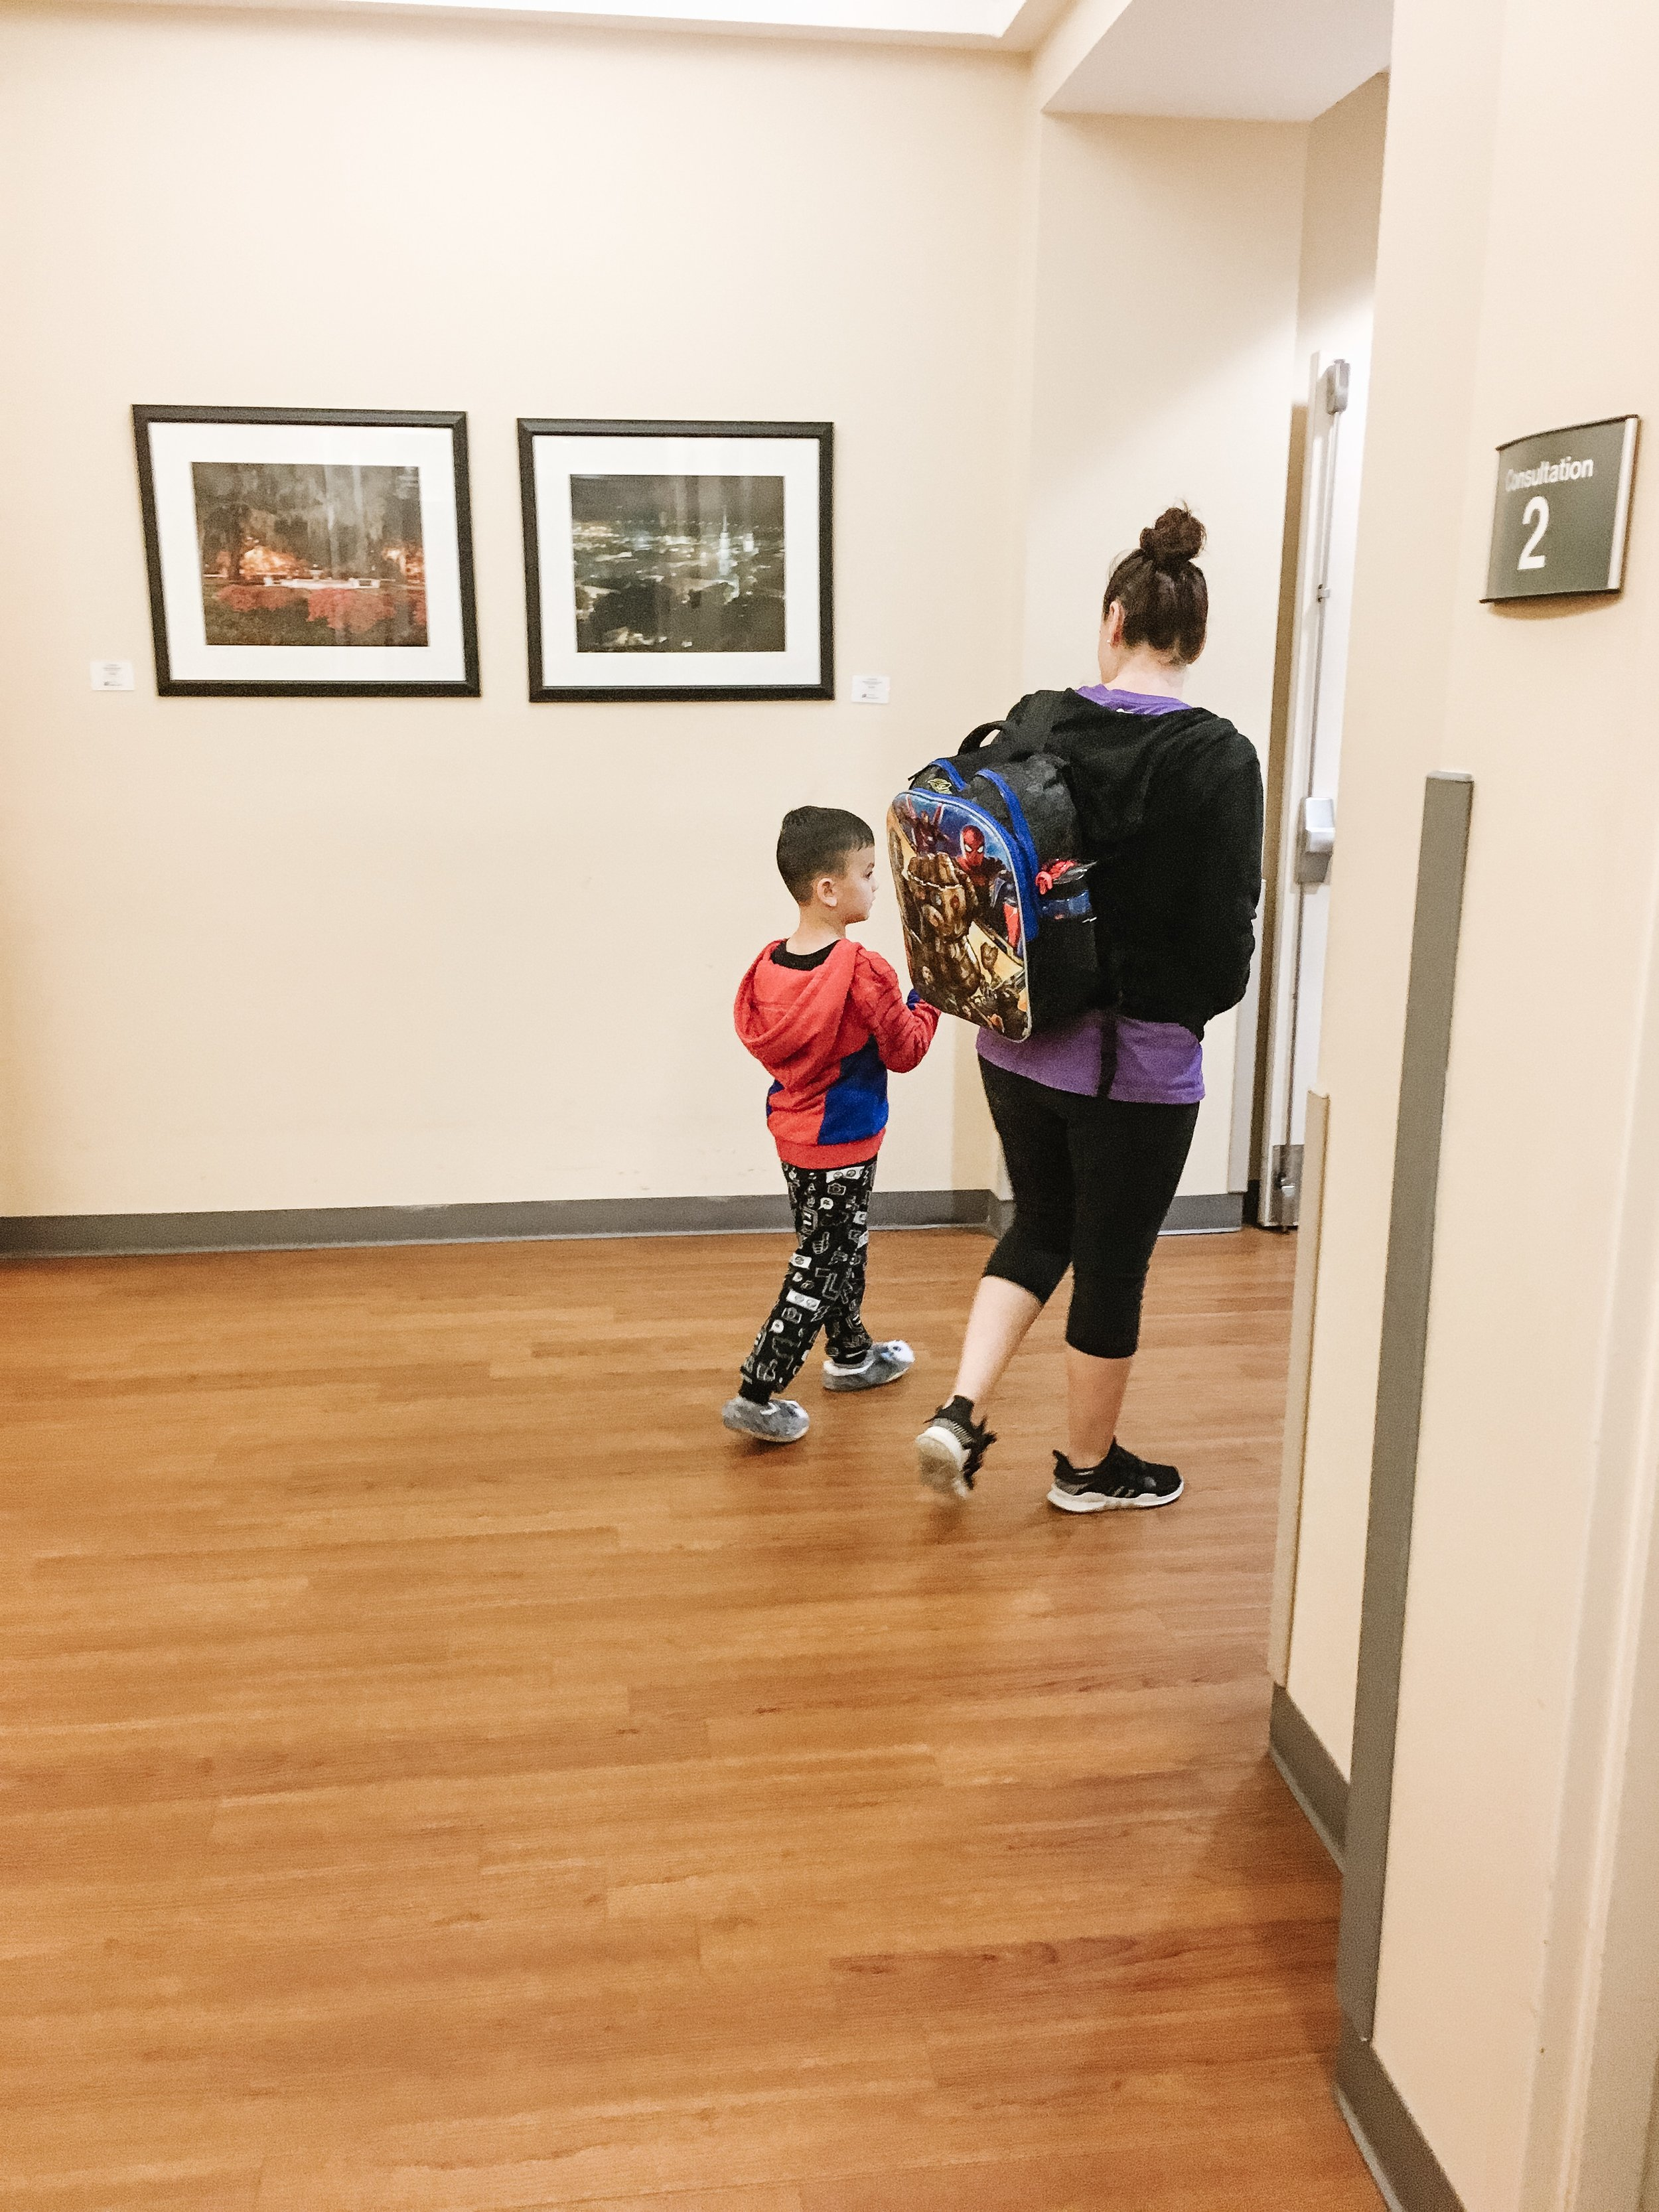 Parent testimonial - Dawn helped my son through his surgery. She helped prepare him prior to, by answering his questions and fears in ways a child would understand. She came to the hospital with us to comfort him and play games and also easy my worries! Dawn is amazing and I would highly recommend her to anyone!- Rachel